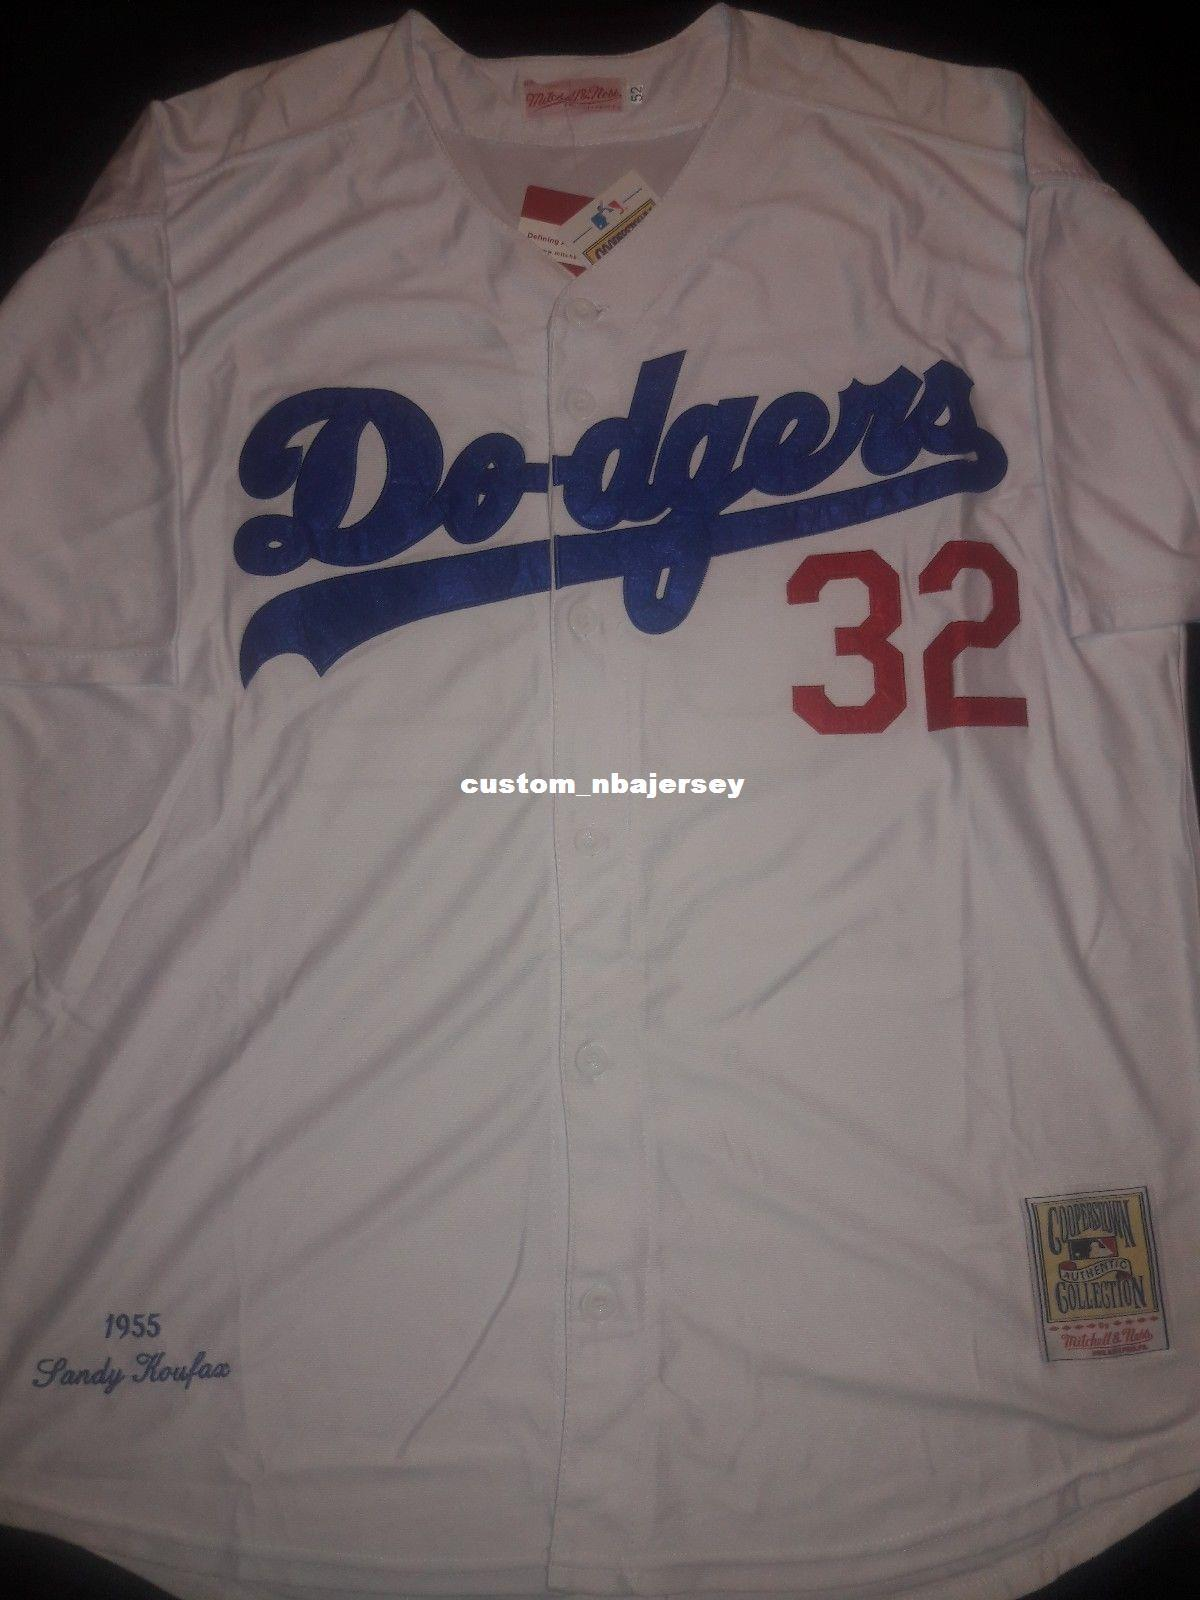 25c37dad980 2019 Cheap Sandy Koufax 1955 Retro Jersey Stitched Customize Any Number  Name MEN WOMEN YOUTH XS 5XL From Custom nbajersey